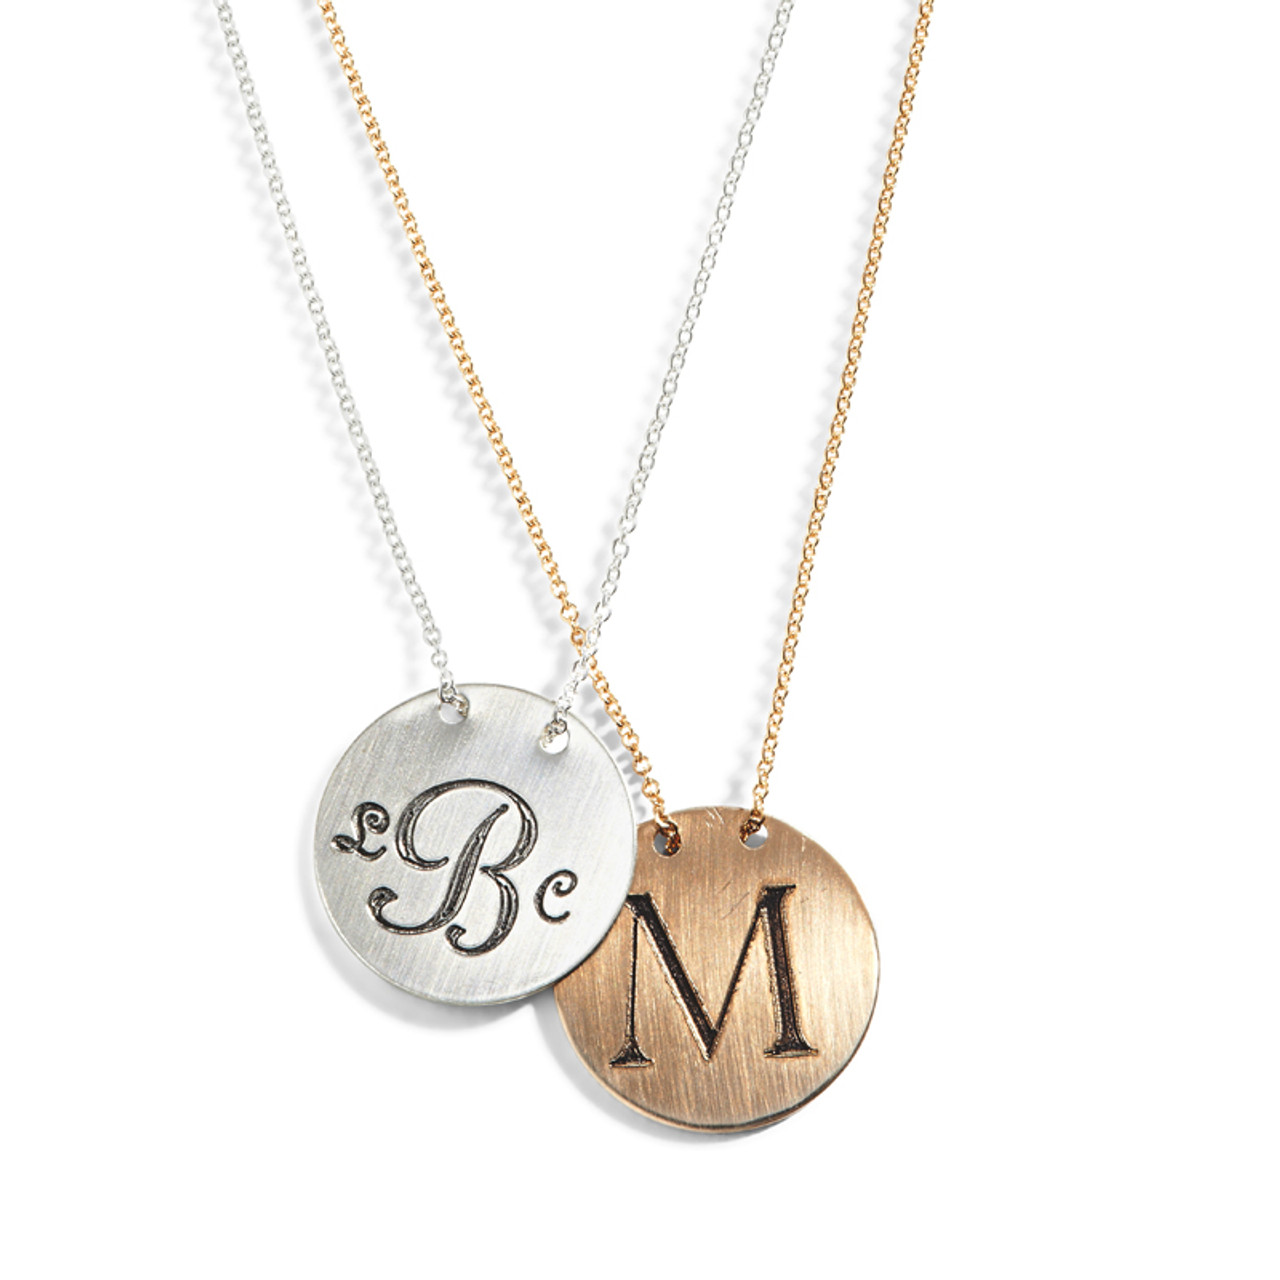 3c21cafcae6198 Personalized Engraved Monogram Necklace | Custom Monogram Jewelry